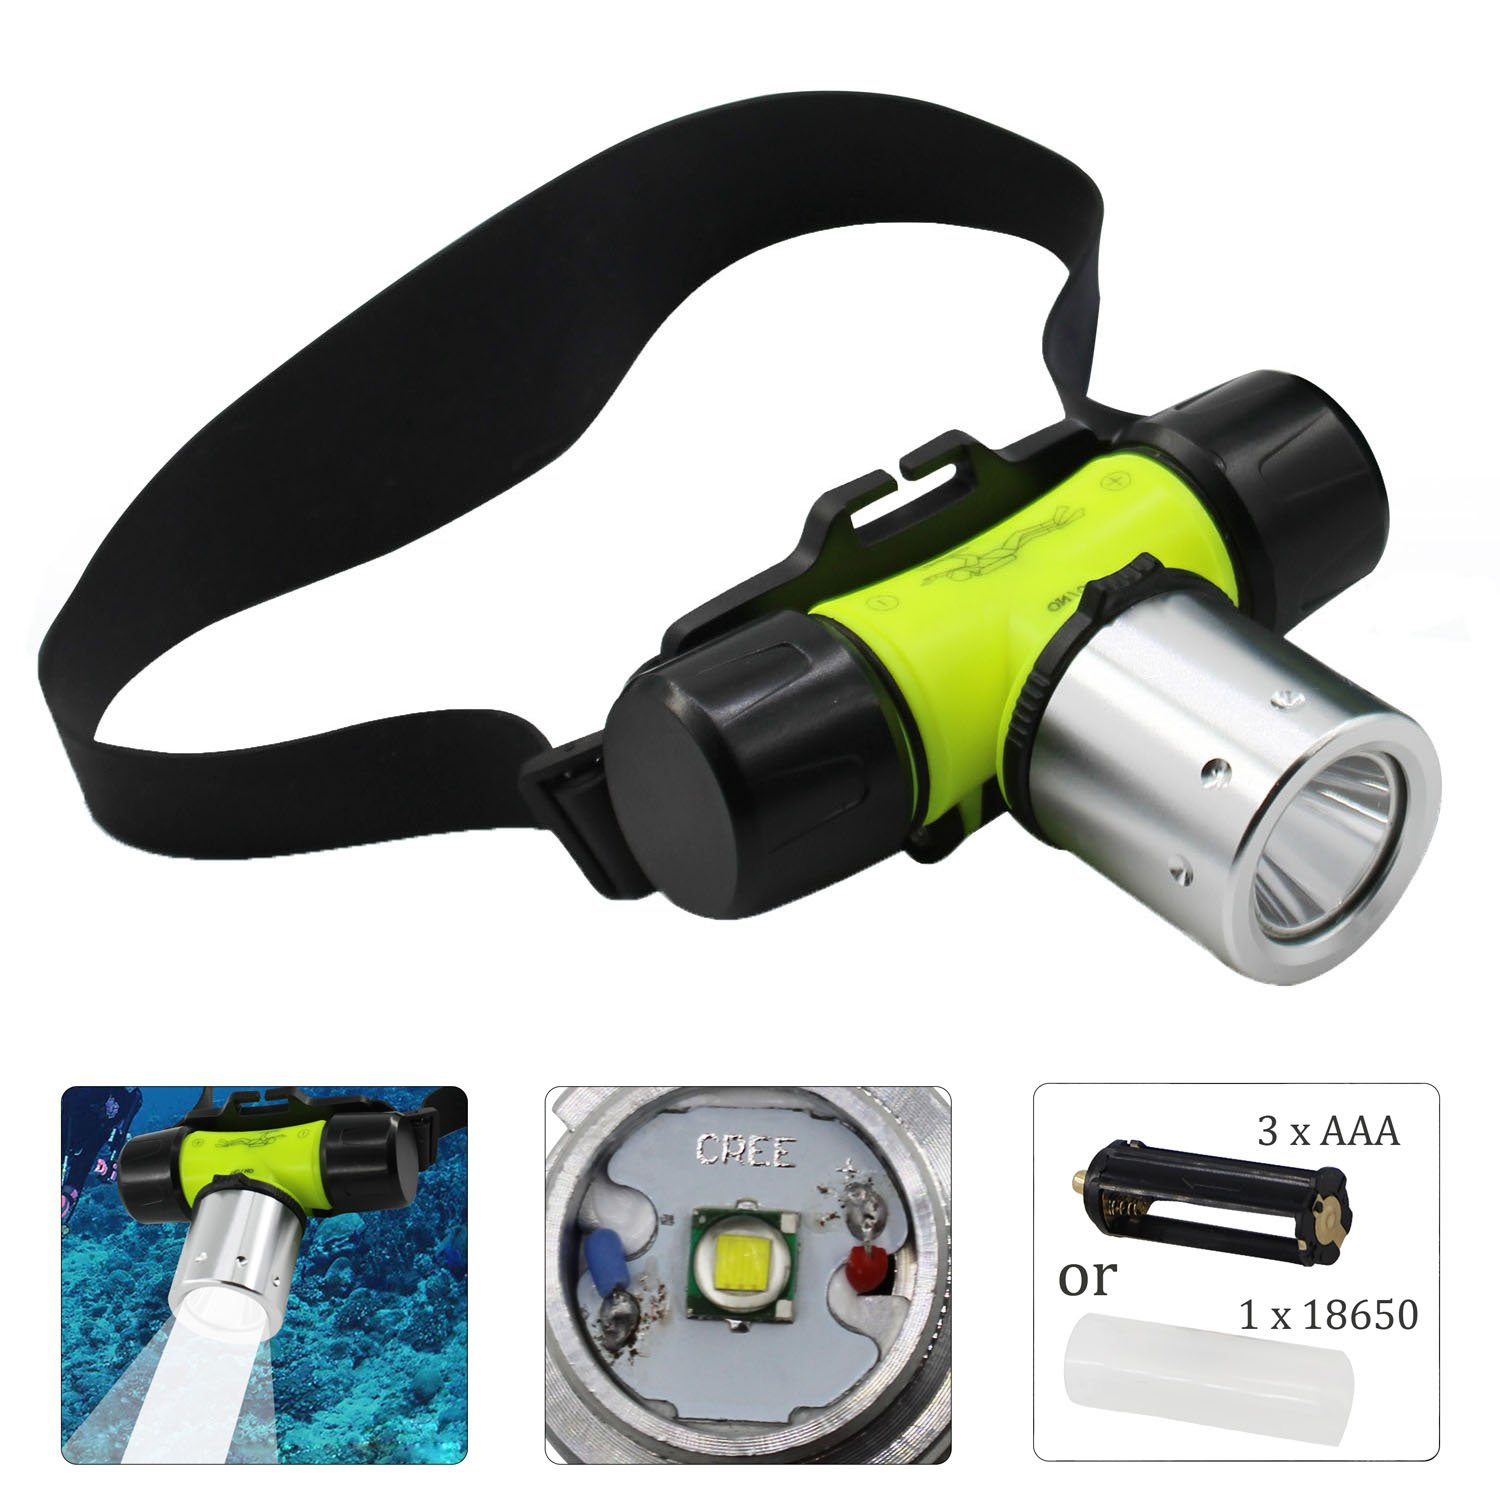 JSHANMEI Underwater Diving Headlamp, Waterproof LED Flashlight, Submarine Head Light CREE T6 AAA/18650 Headlight for Fishing Swimming Camping Hunting Hiking Cycling Outdoor Sports (NO Batteries)